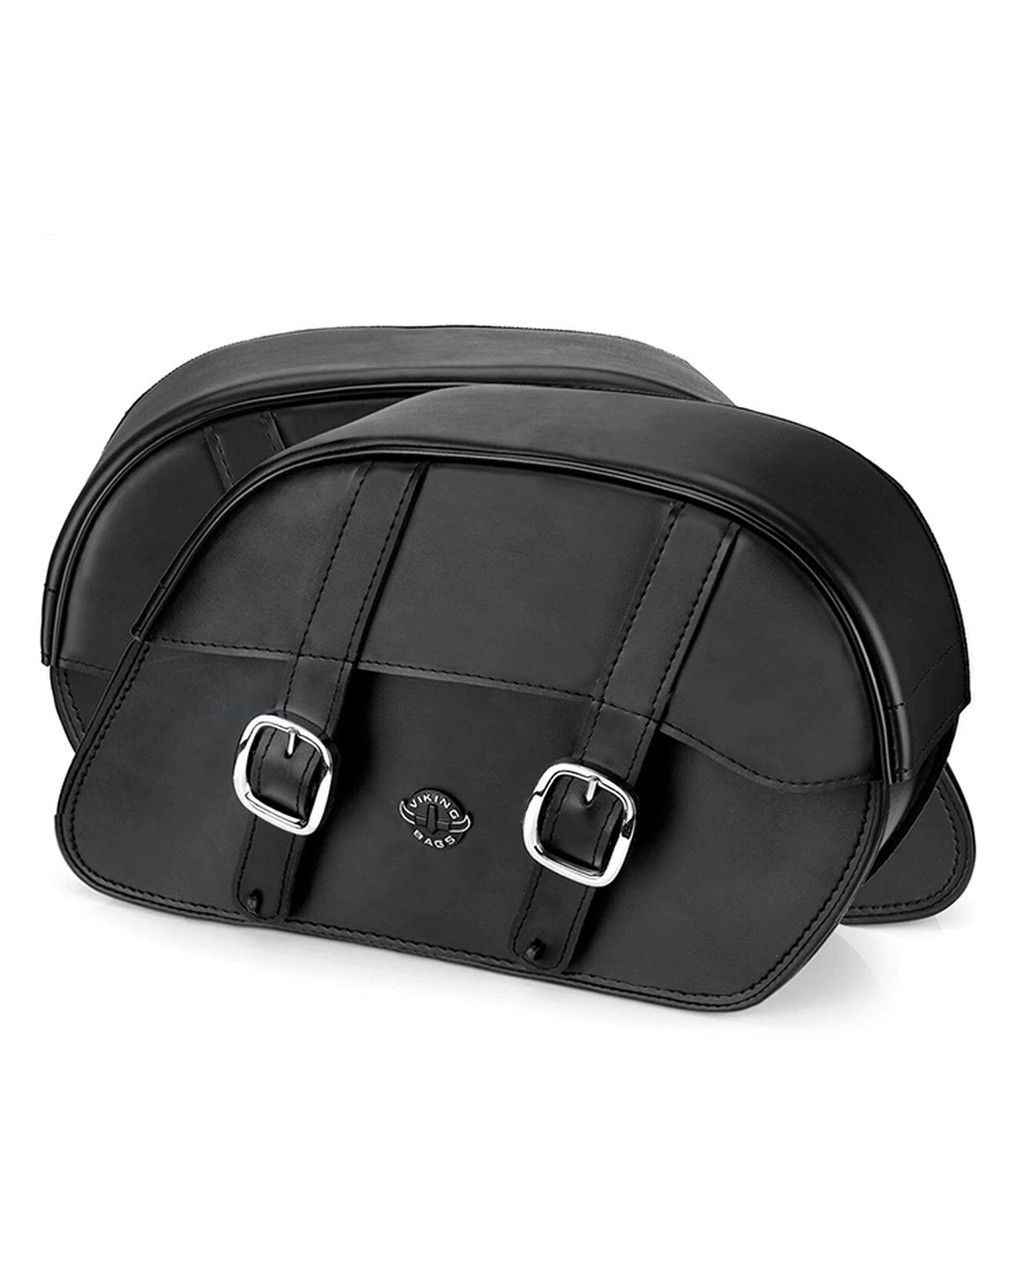 VikingBags Char Vital Padlock Double Strap Leather Medium Motorcycle Saddlebags For Harley Softail Low Rider S FXLRS Both Bags View